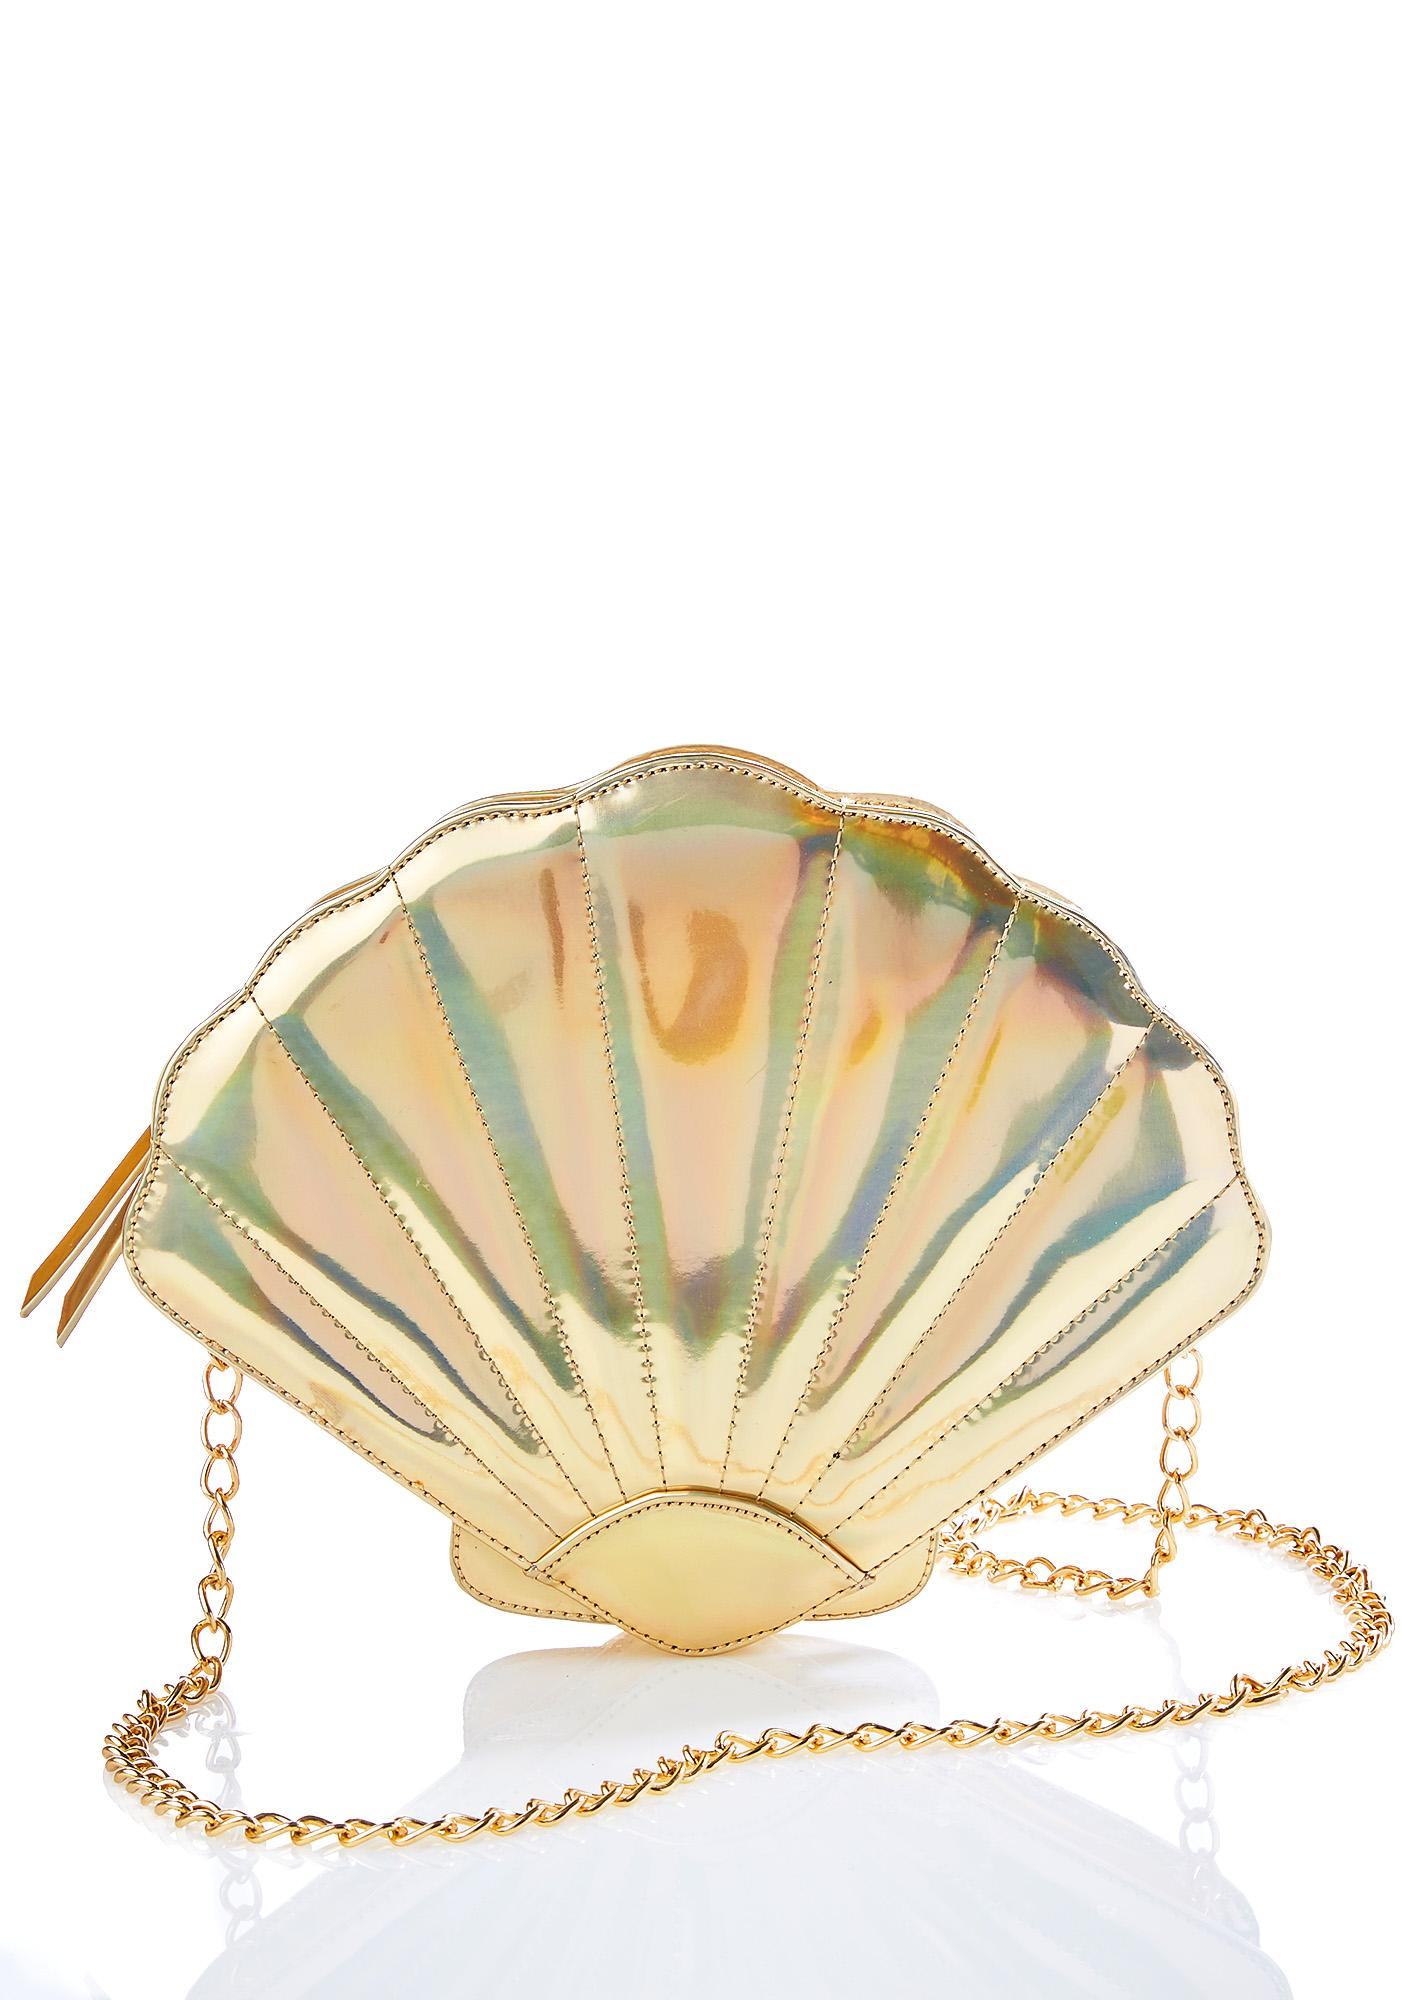 Nila Anthony Gilded Seashell Bag